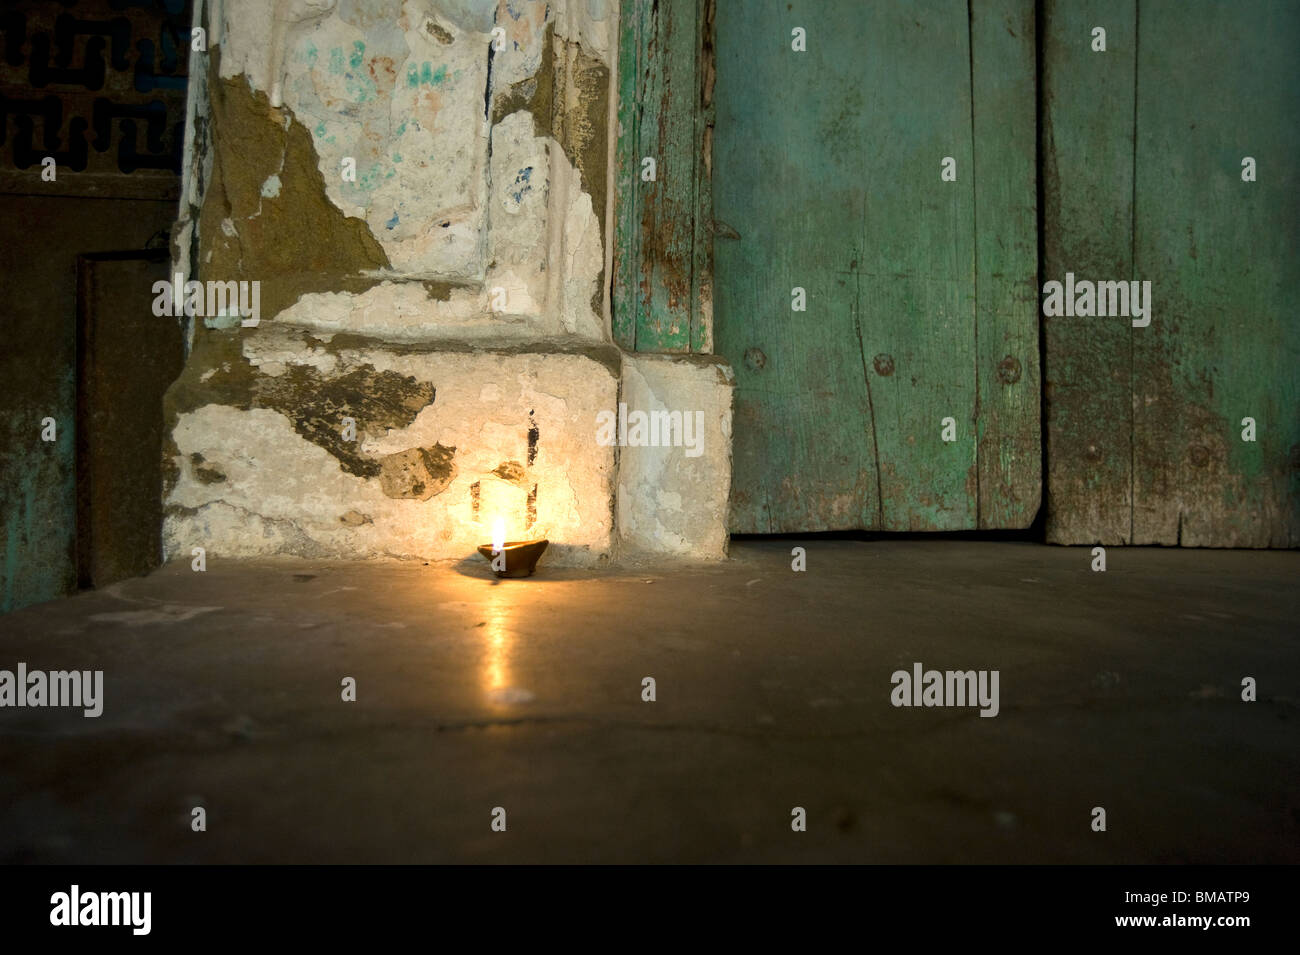 Deepak light at domestic door at Diwali, Udaipur, Rajasthan - Stock Image